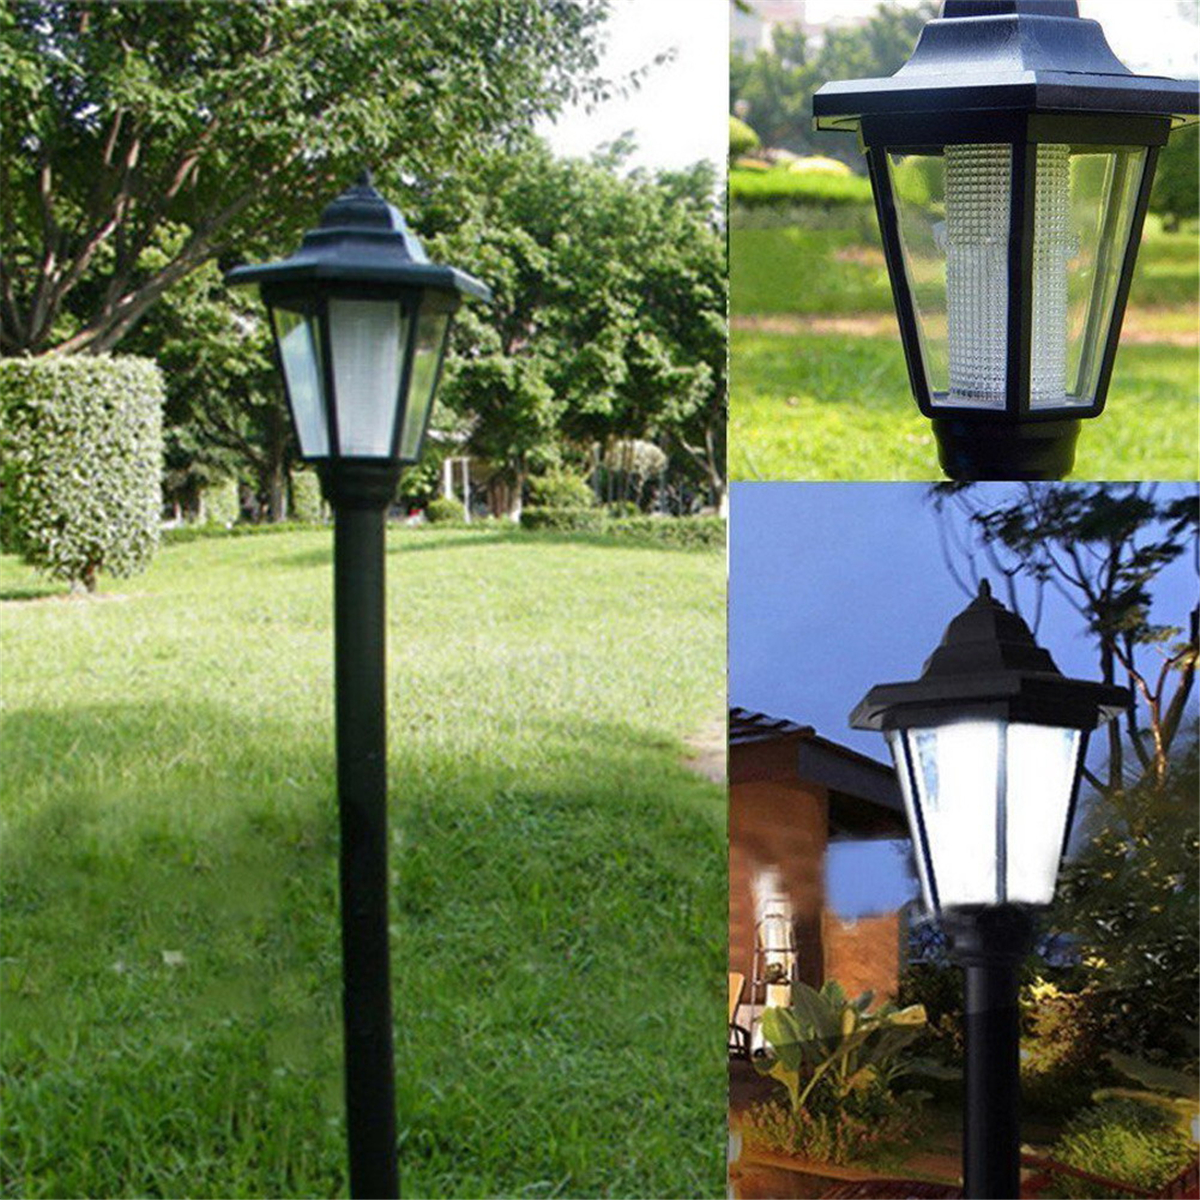 Solar Lamp Post Us 31 43 Outdoor Garden Led Solar Lamp Light Under Ground Lawn Lamp Post Lanterns Pillar Yard Garden Decoration Lighting White Light In Lawn Lamps